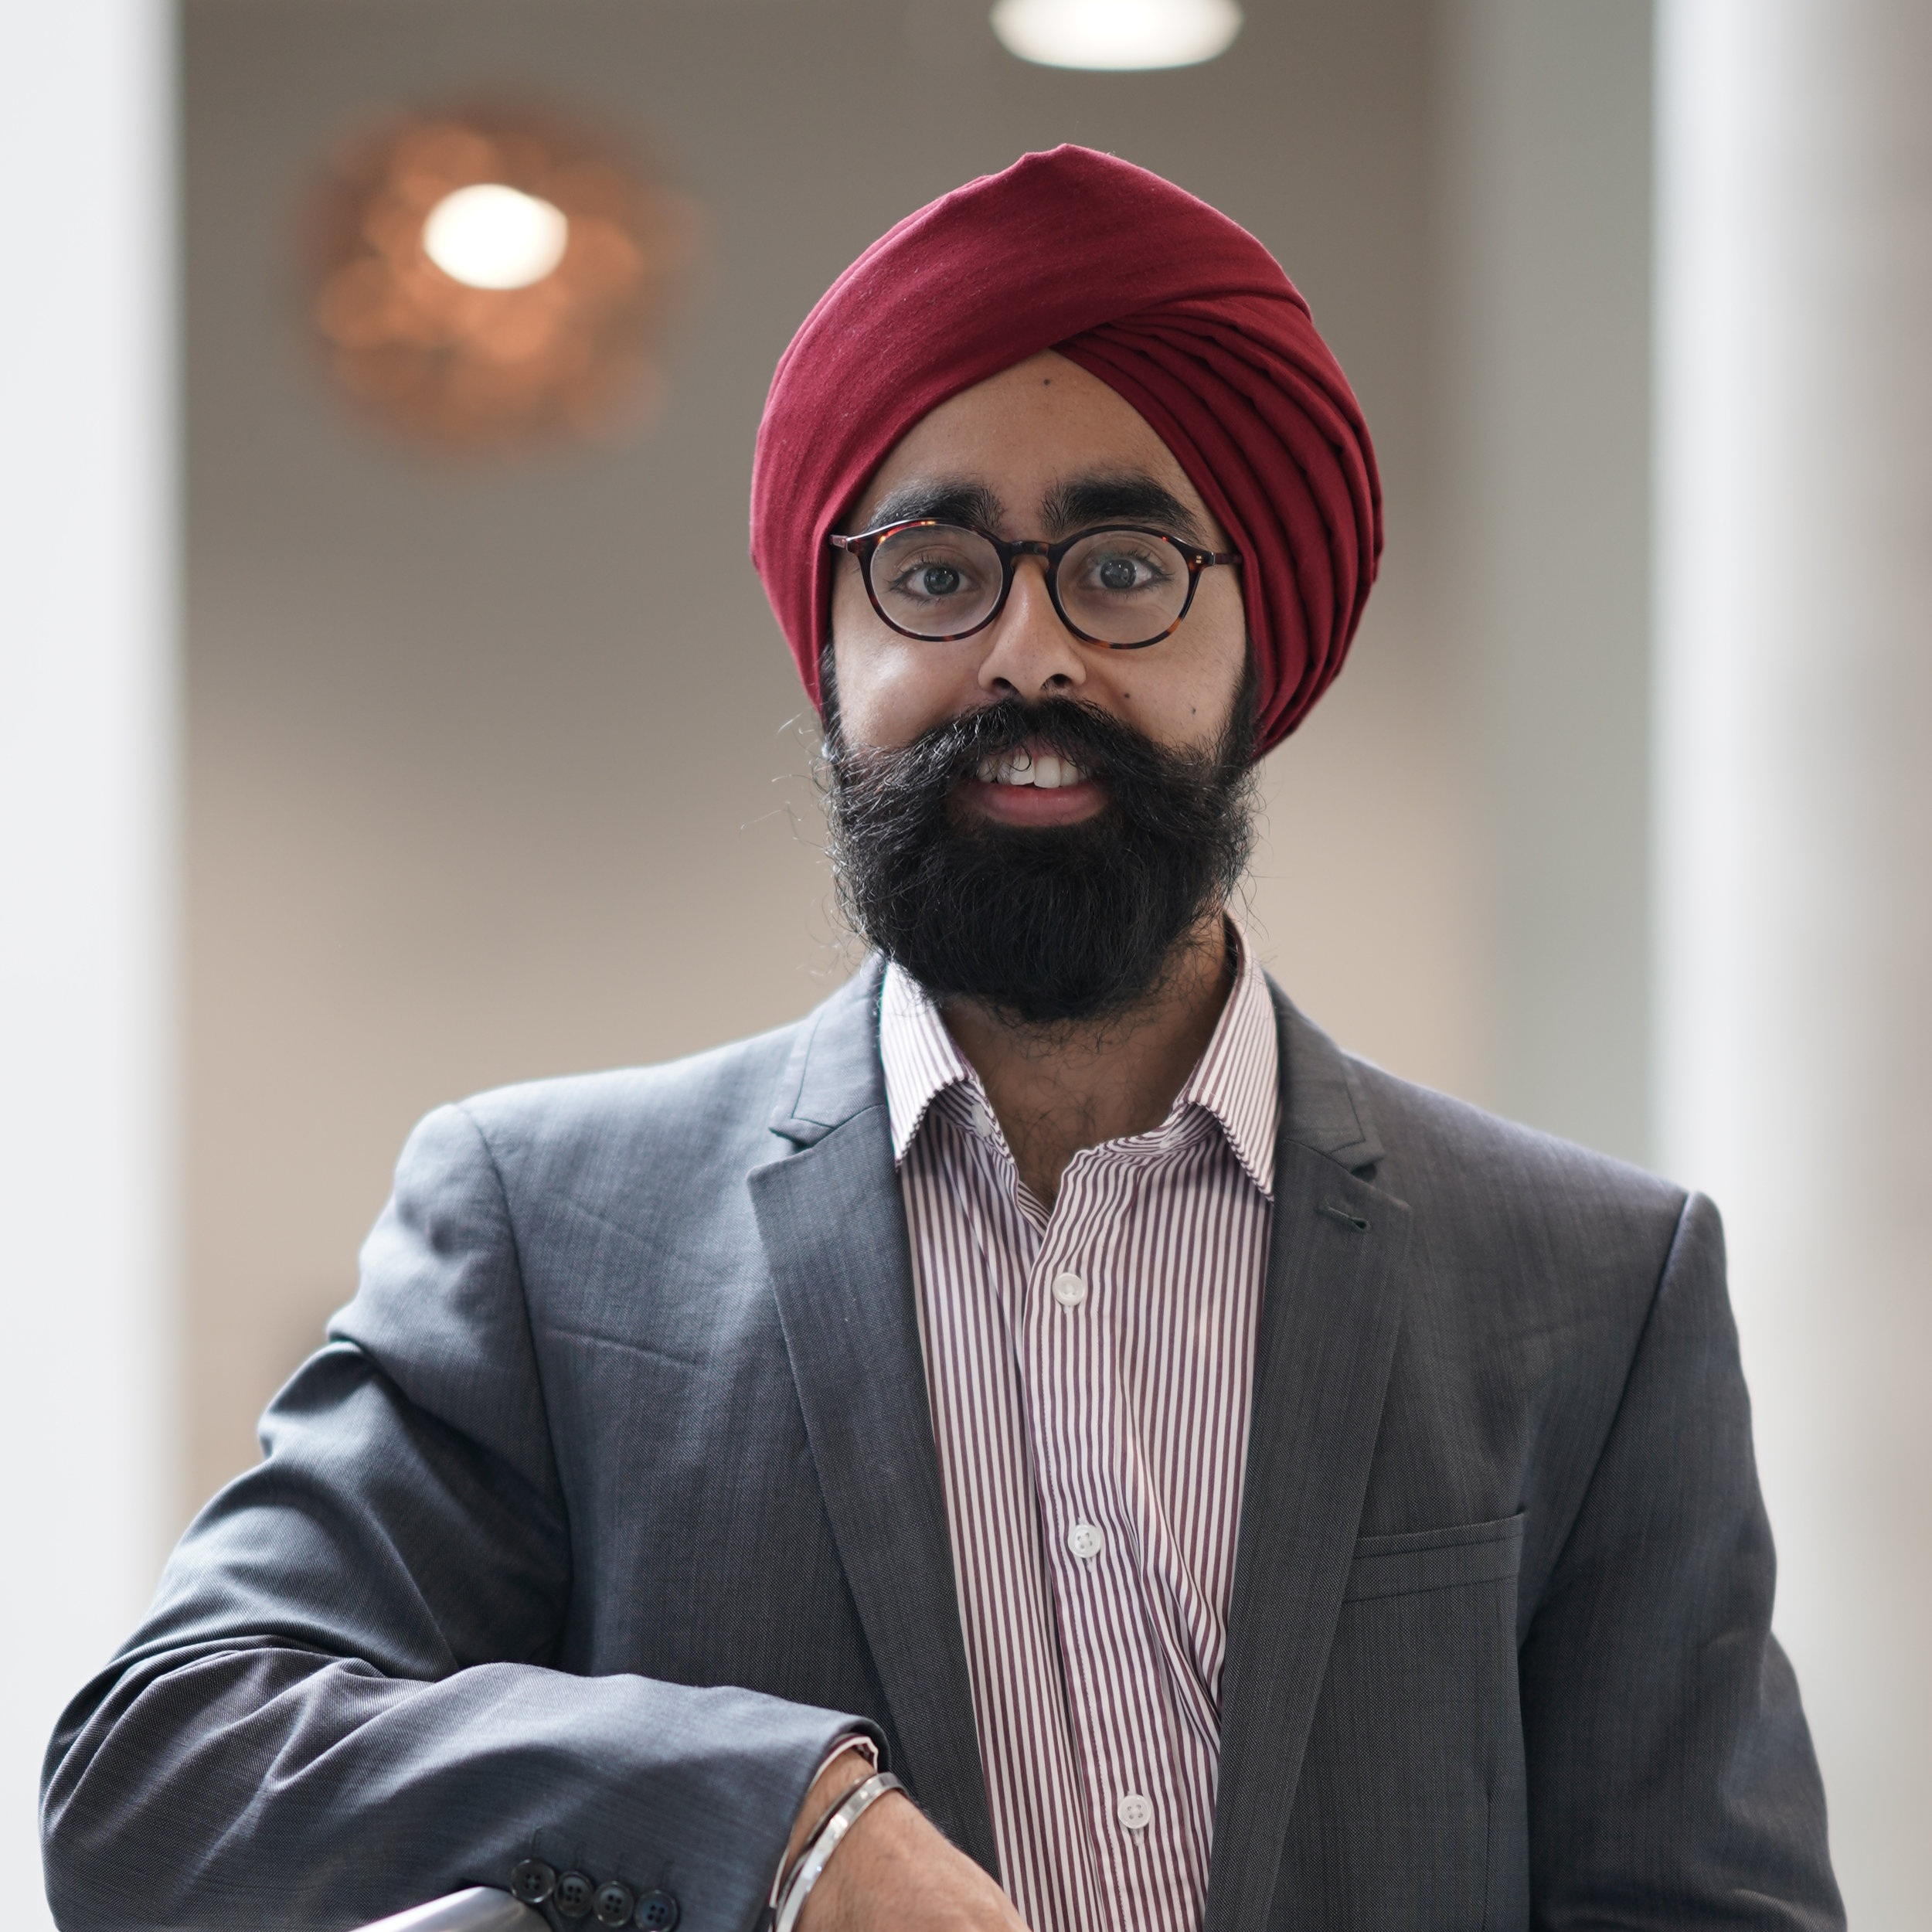 Hira Virdee    - CEO  Hira is an expert on orbit prediction and attitude modelling. He received his PhD from UCL with his thesis on Non-conservative torque and computational attitude modelling of space debris. He has nearly a decade of experience in the space sector. He also has in-depth experience in business and management consulting for FTSE 100 companies, including the application of data science and artificial intelligence to leverage insight from data.